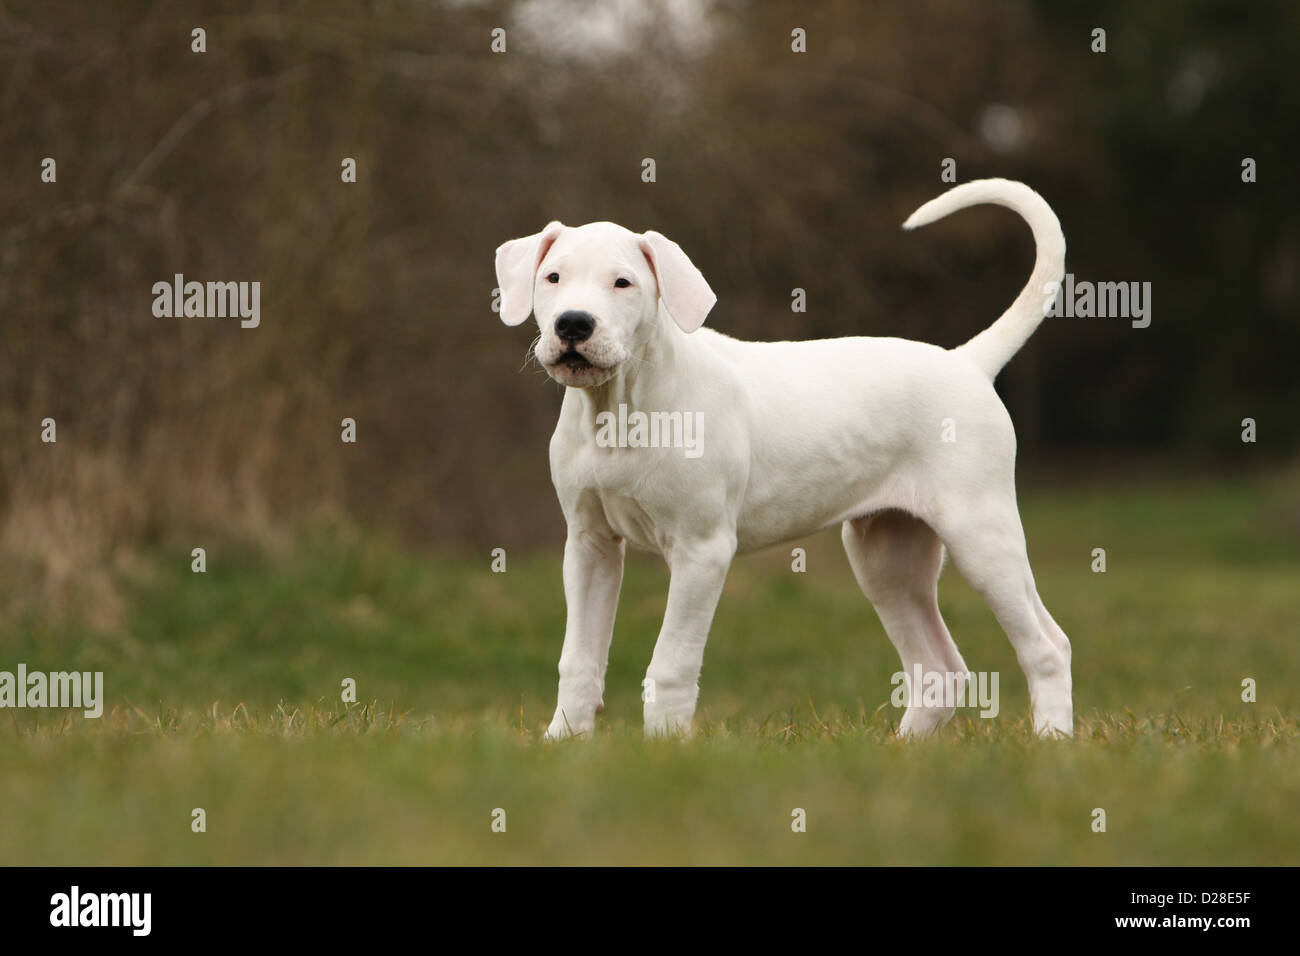 Dog Dogo Argentino / Dogue Argentin (natural ears) puppy standing